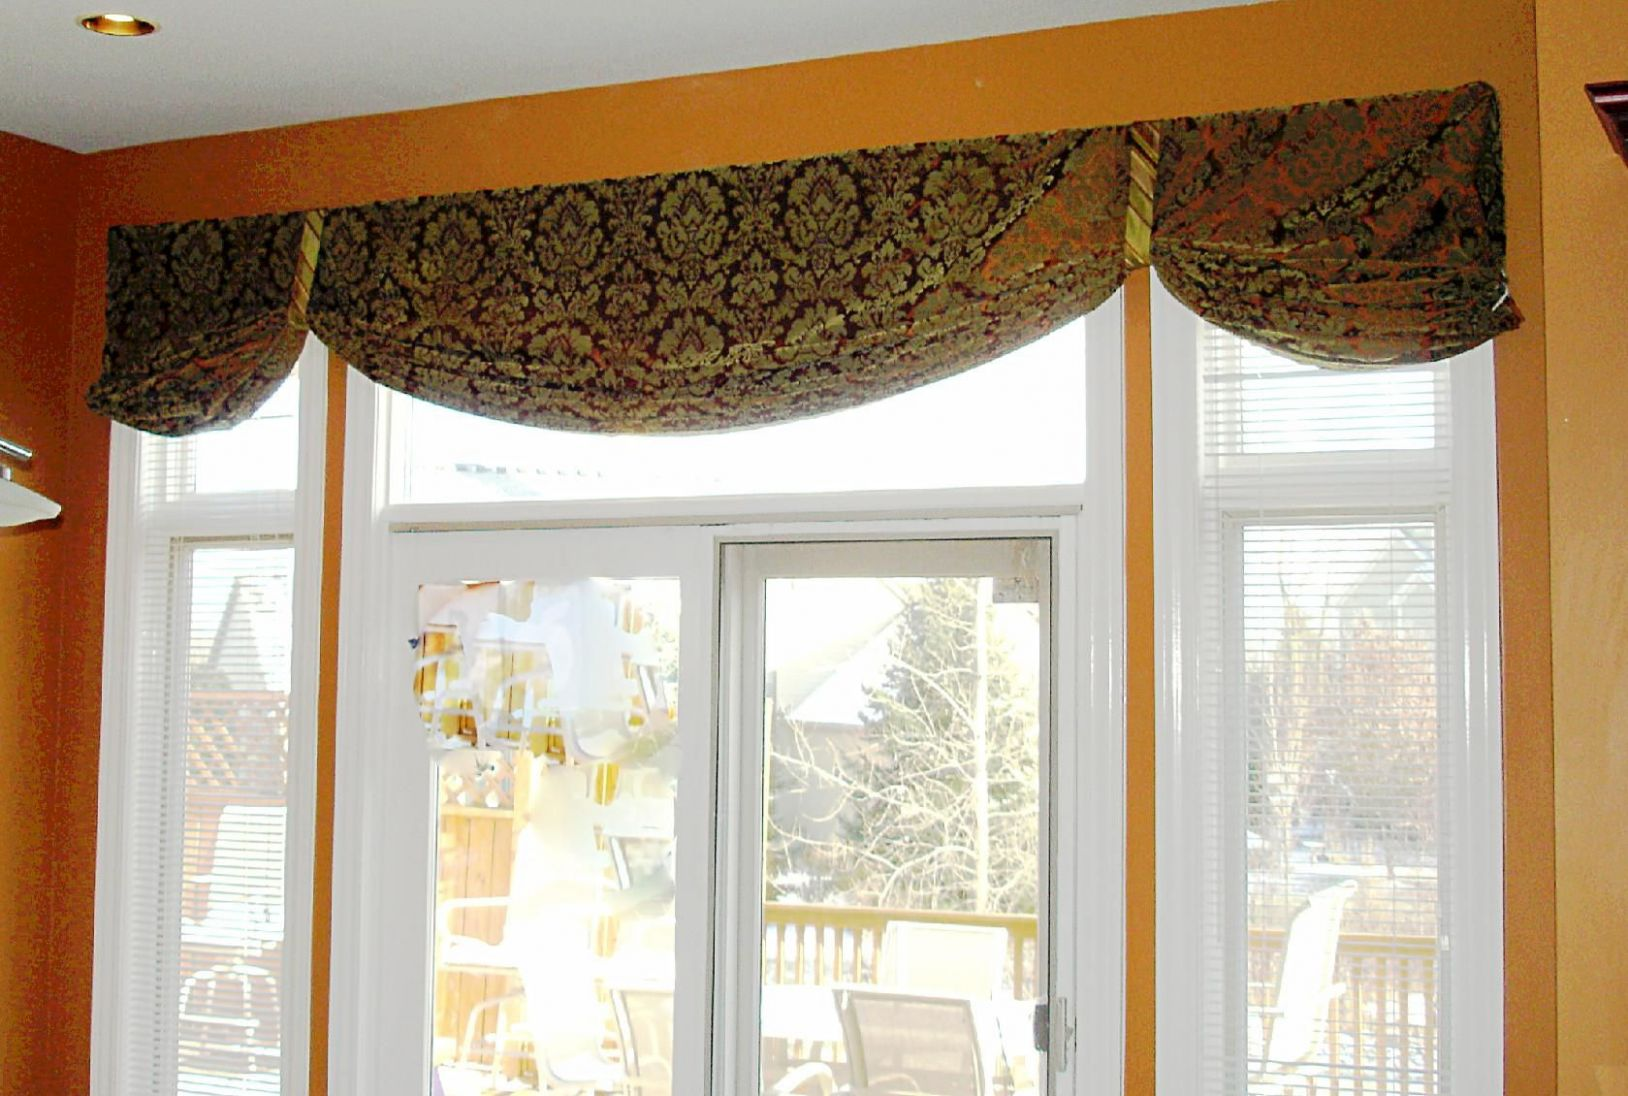 Window Valance Ideas For Large Windows | Valances for living room ...